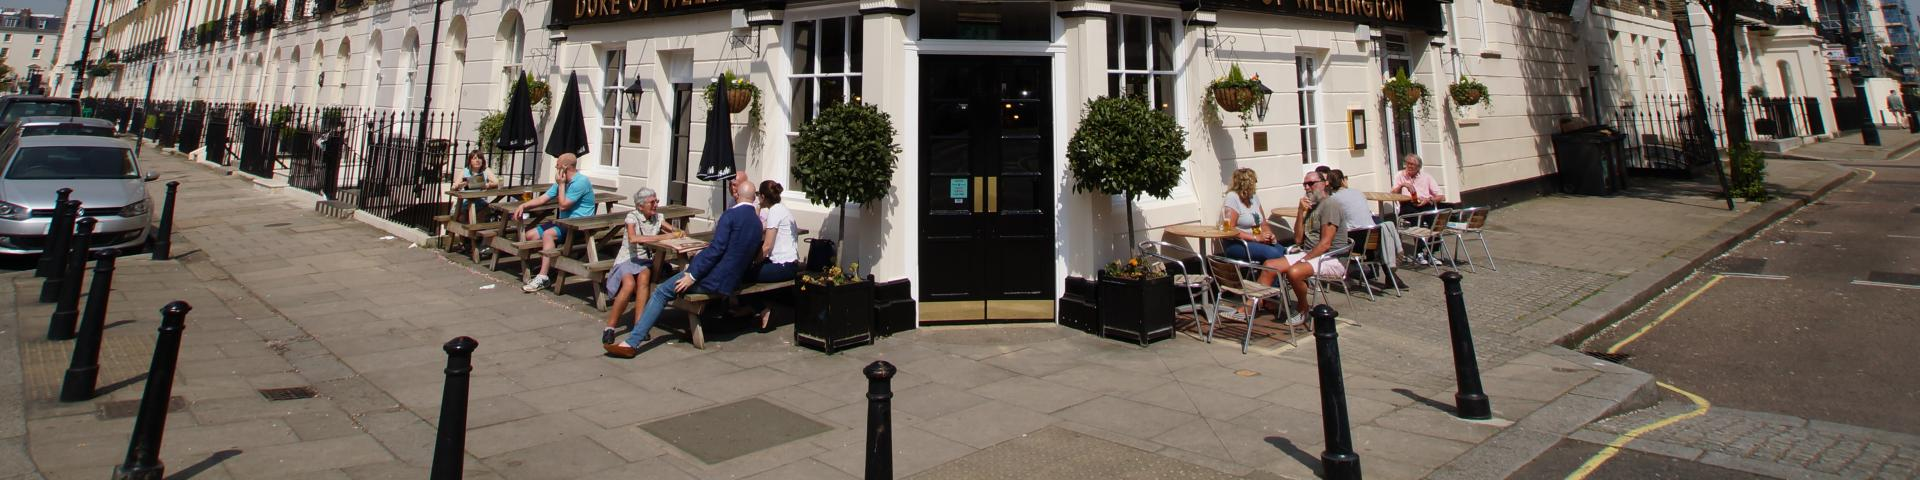 Duke of Wellington, Belgravia London - Exterior